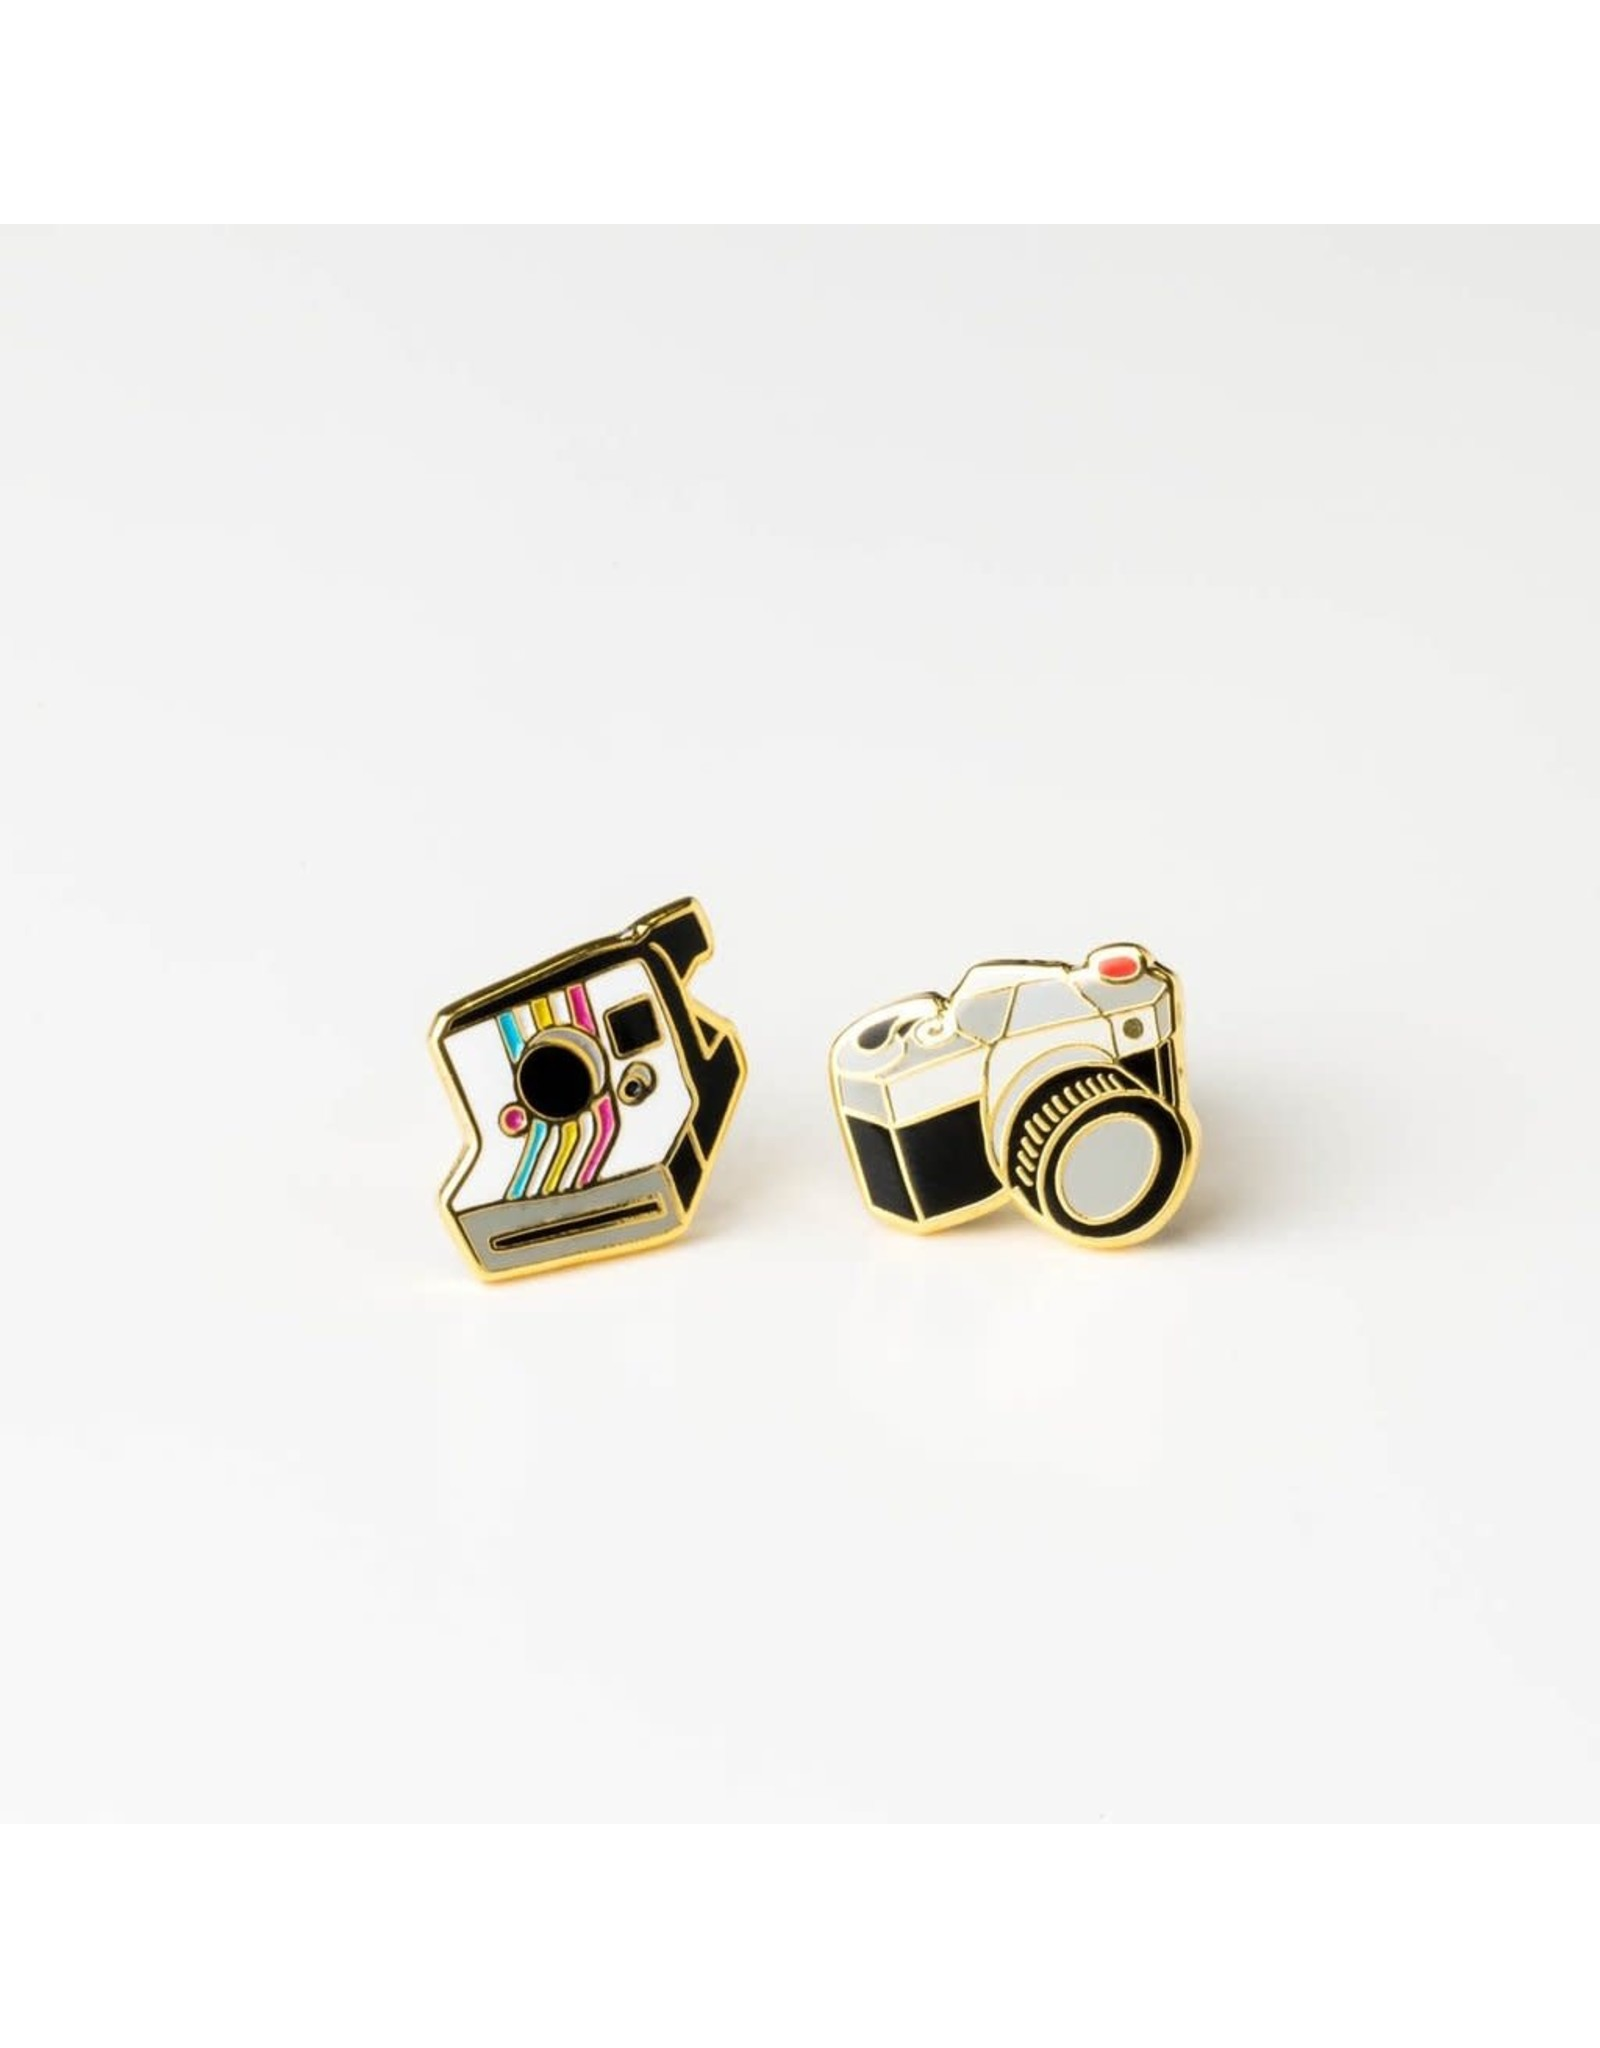 Polariod and SLR Camera Earrings